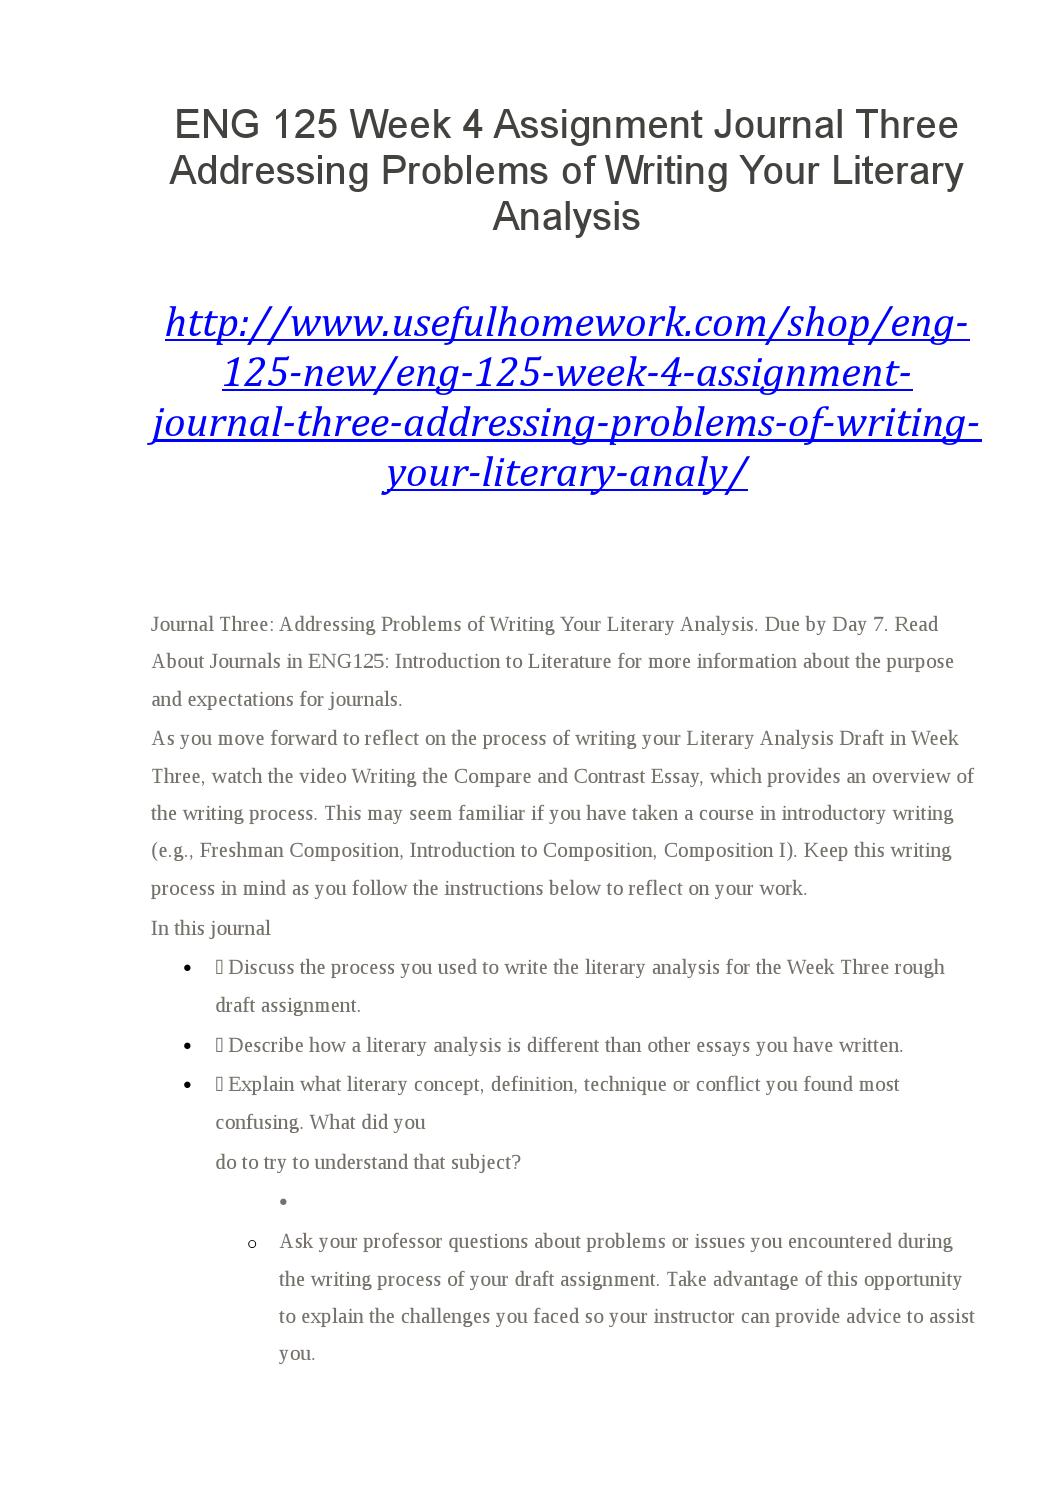 literary log essay What is the main purpose of a thesis statement in a literary analysis essay ato briefly state the author's purpose for writing the text you are analyzing.